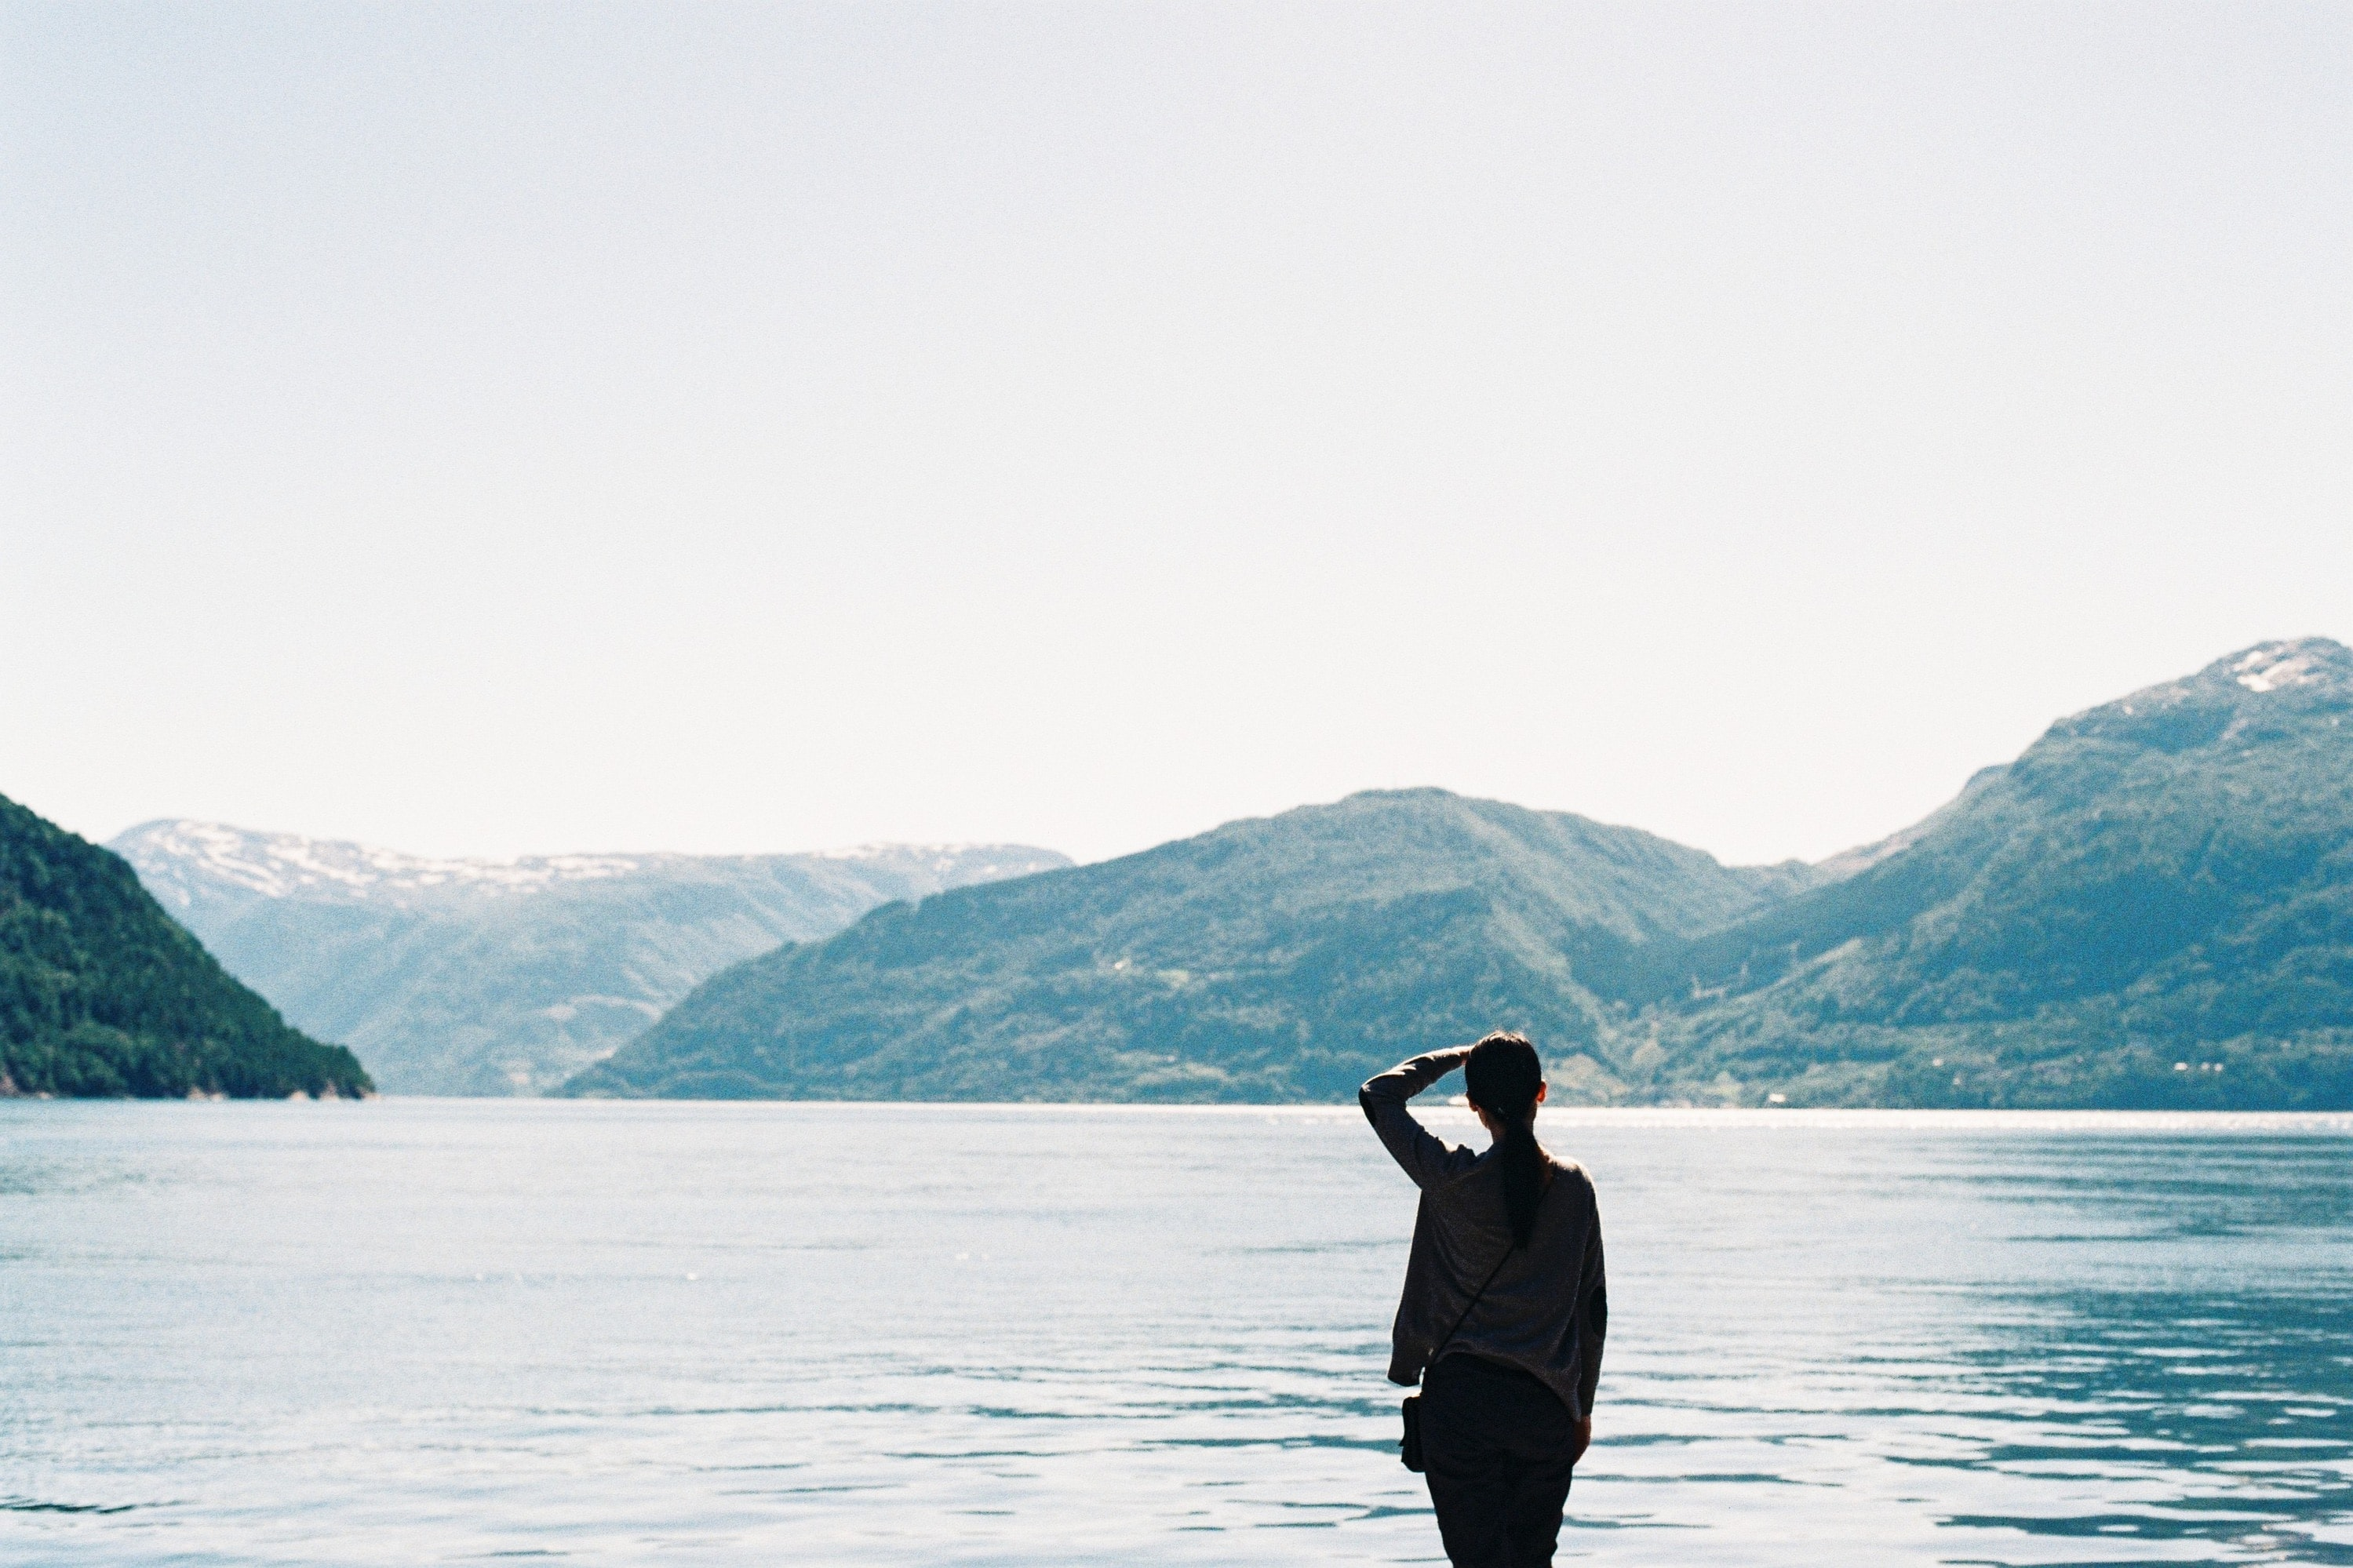 silhouette of person near body of water and mountains at daytime